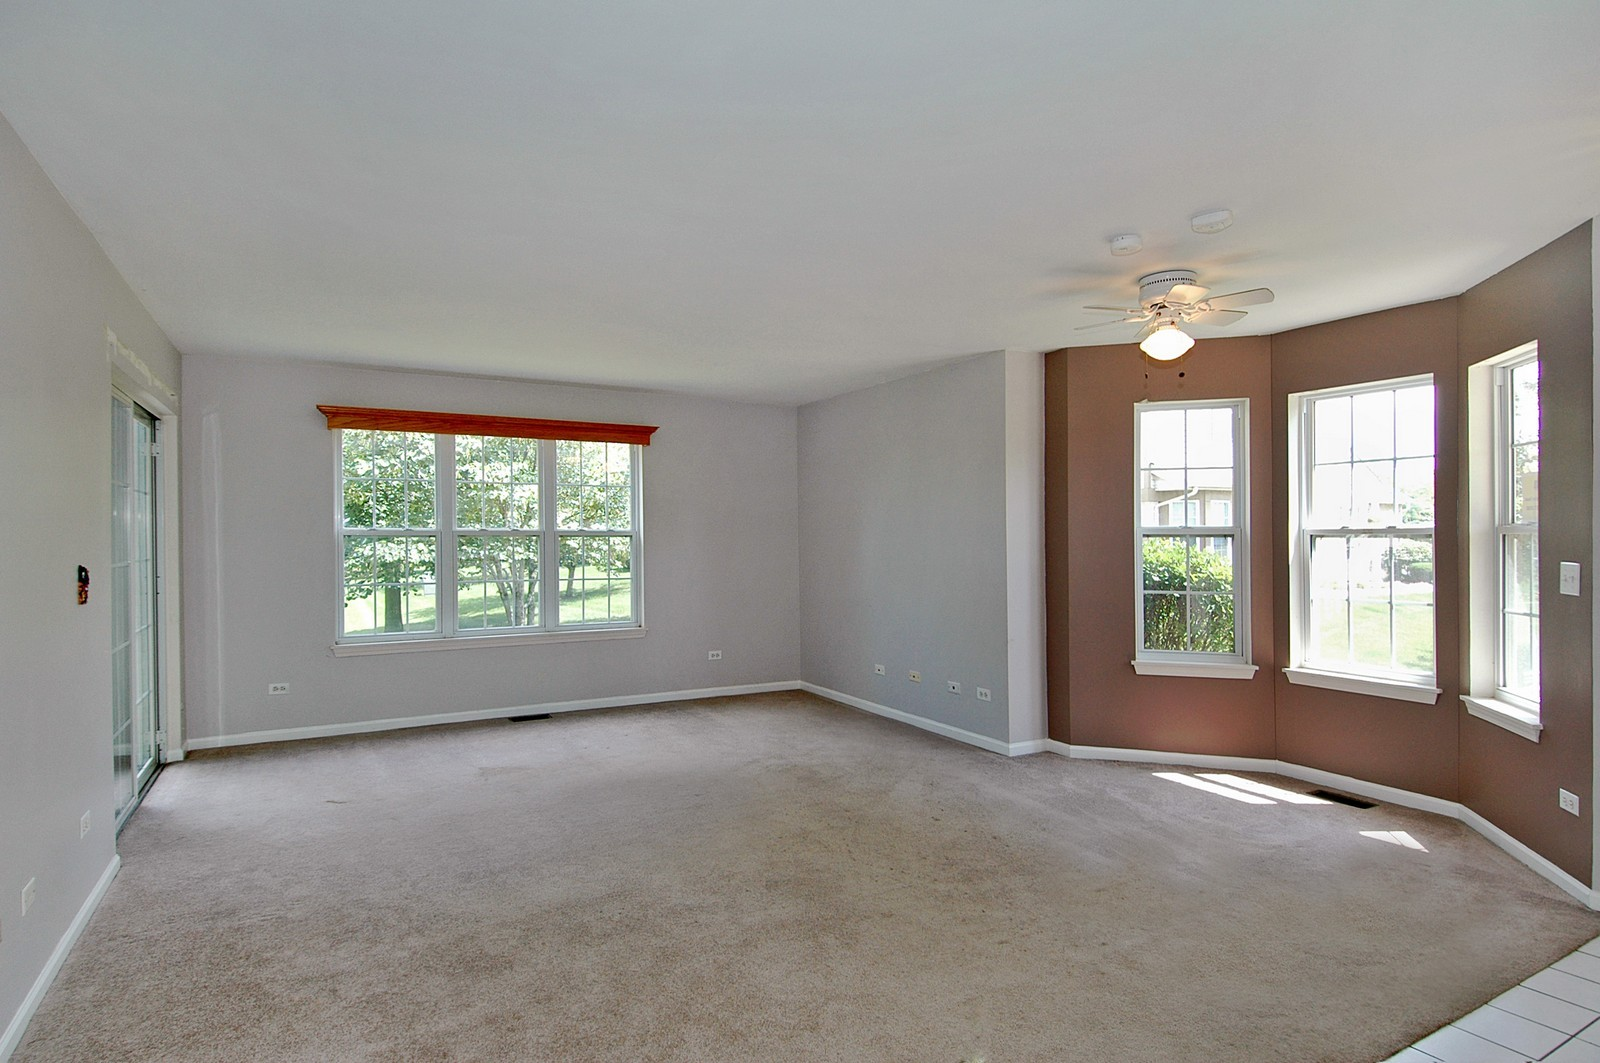 Real Estate Photography - 360 Crystal Ridge Dr, Unit A, Crystal Lake, IL, 60014 - Living Room / Dining Room